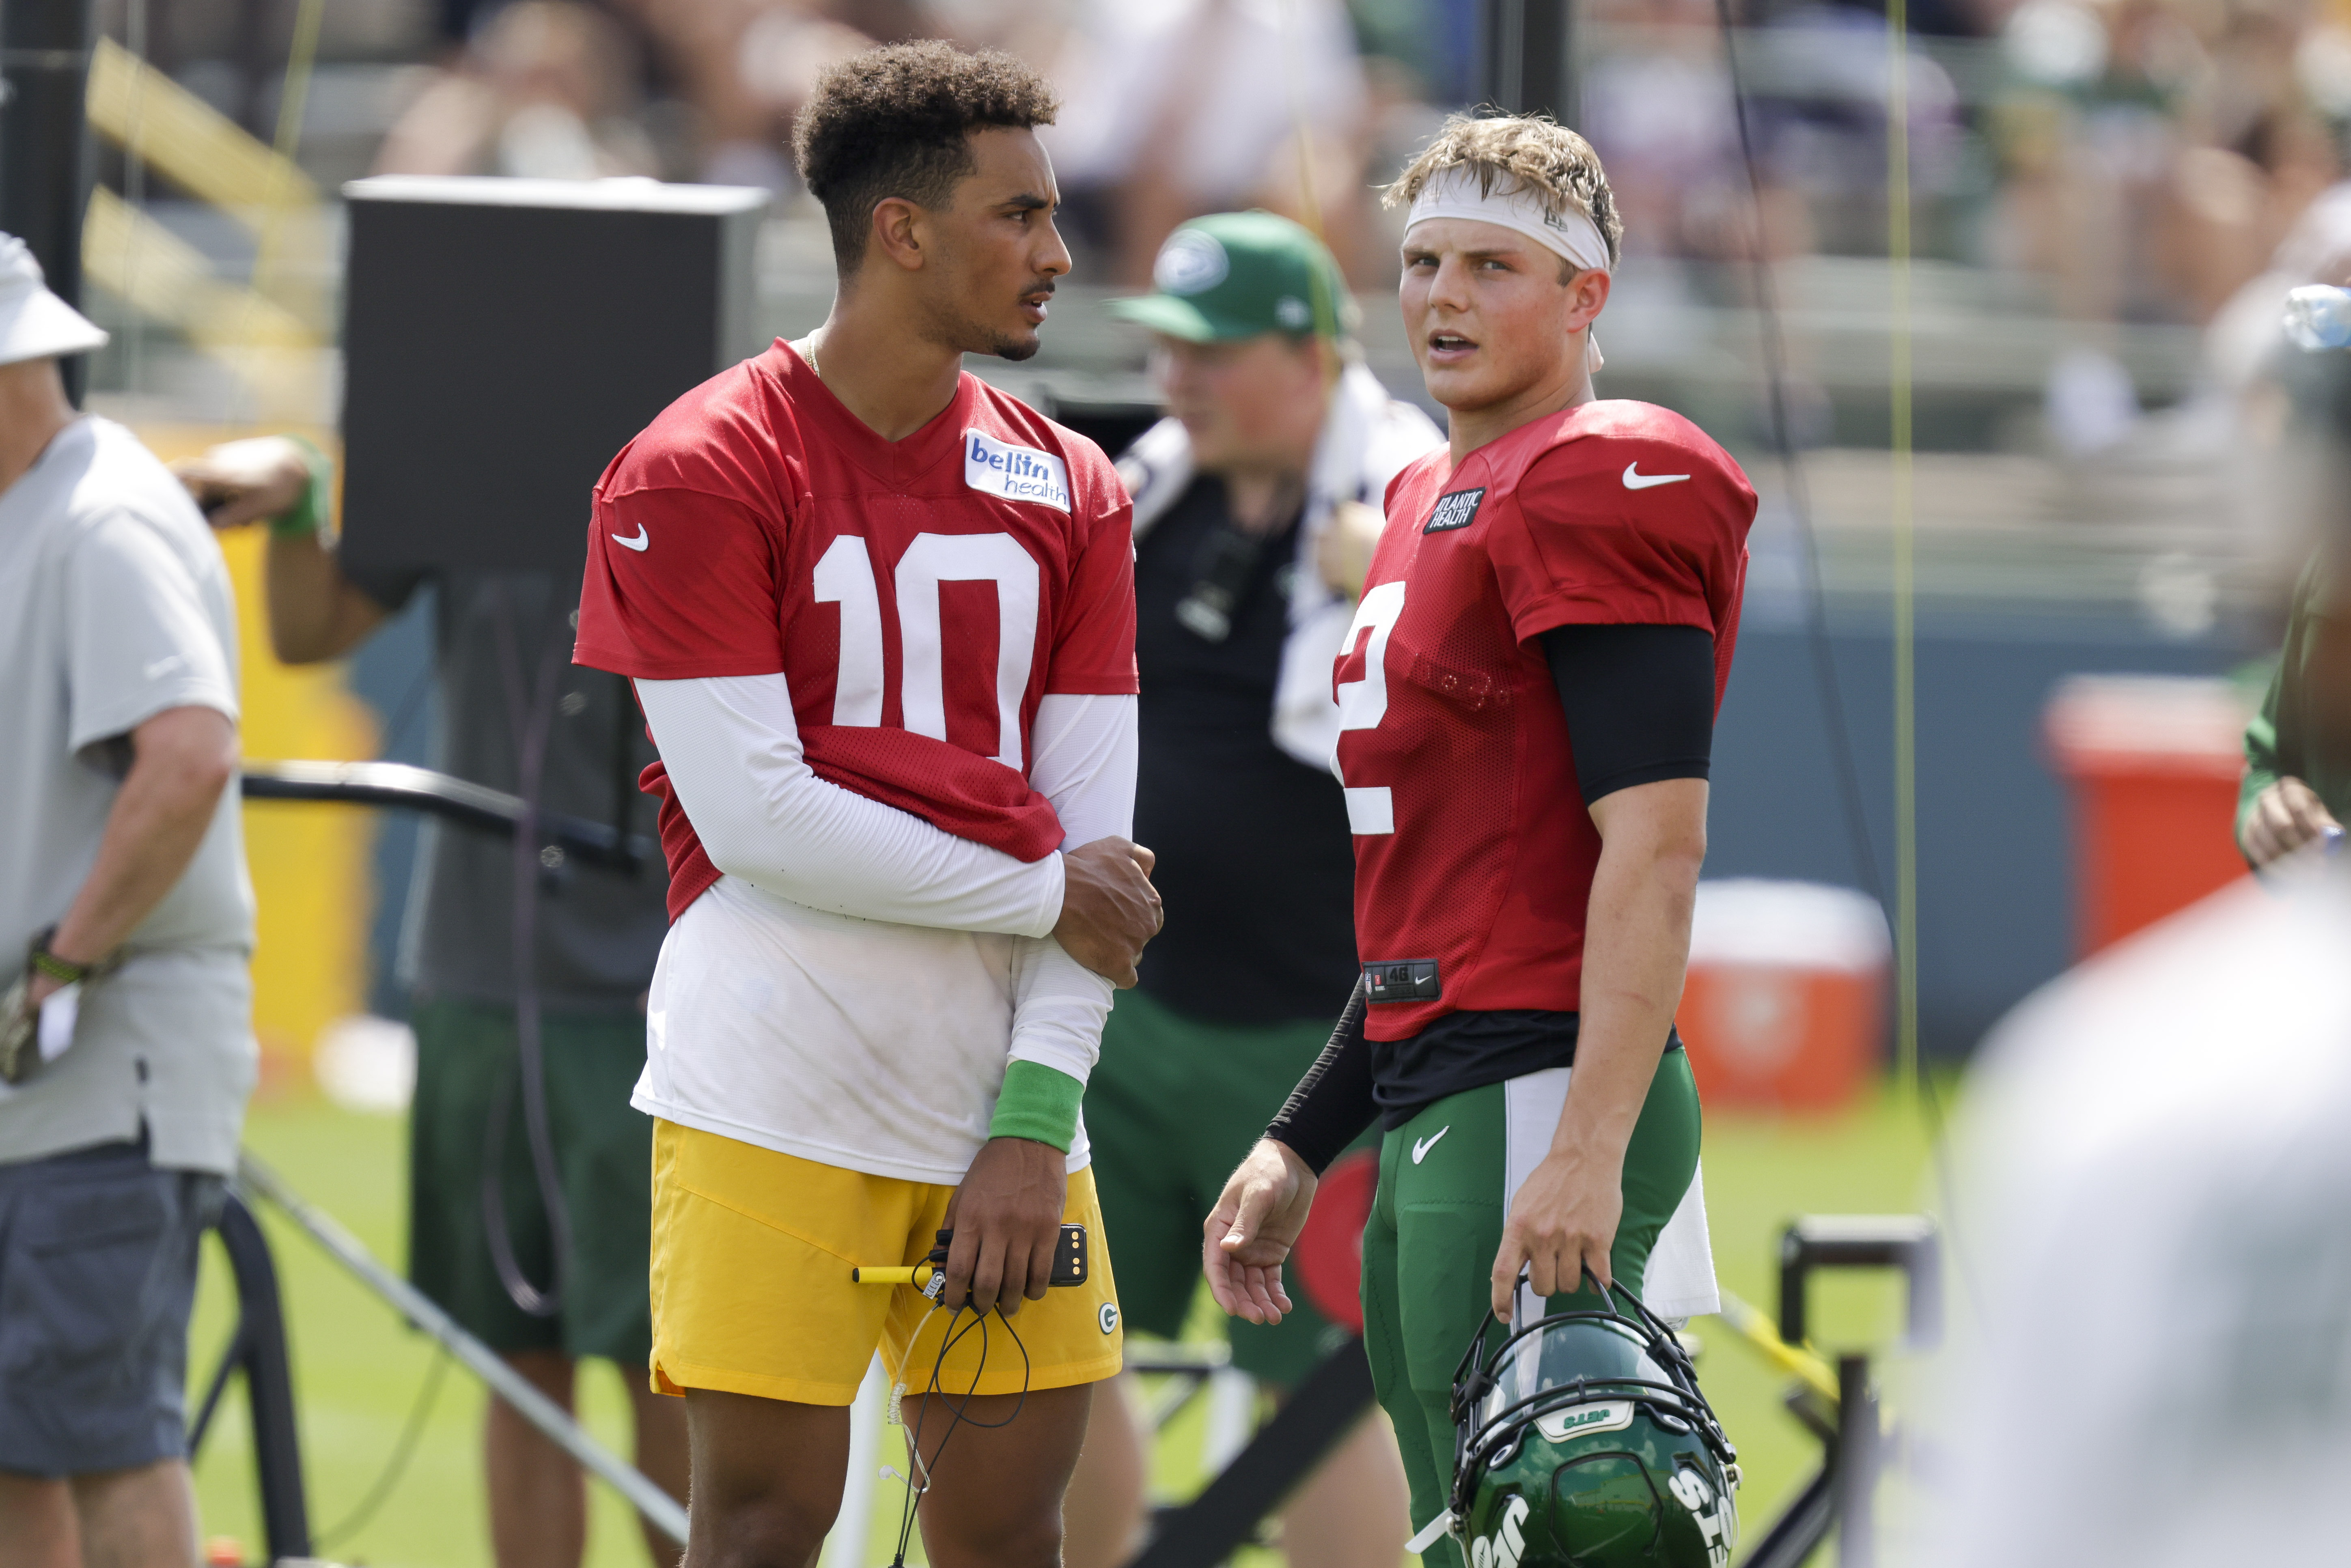 Green Bay Packers quarterback Jordan Love and New York Jets quarterback Zach Wilson during a joint NFL football training camp practice.